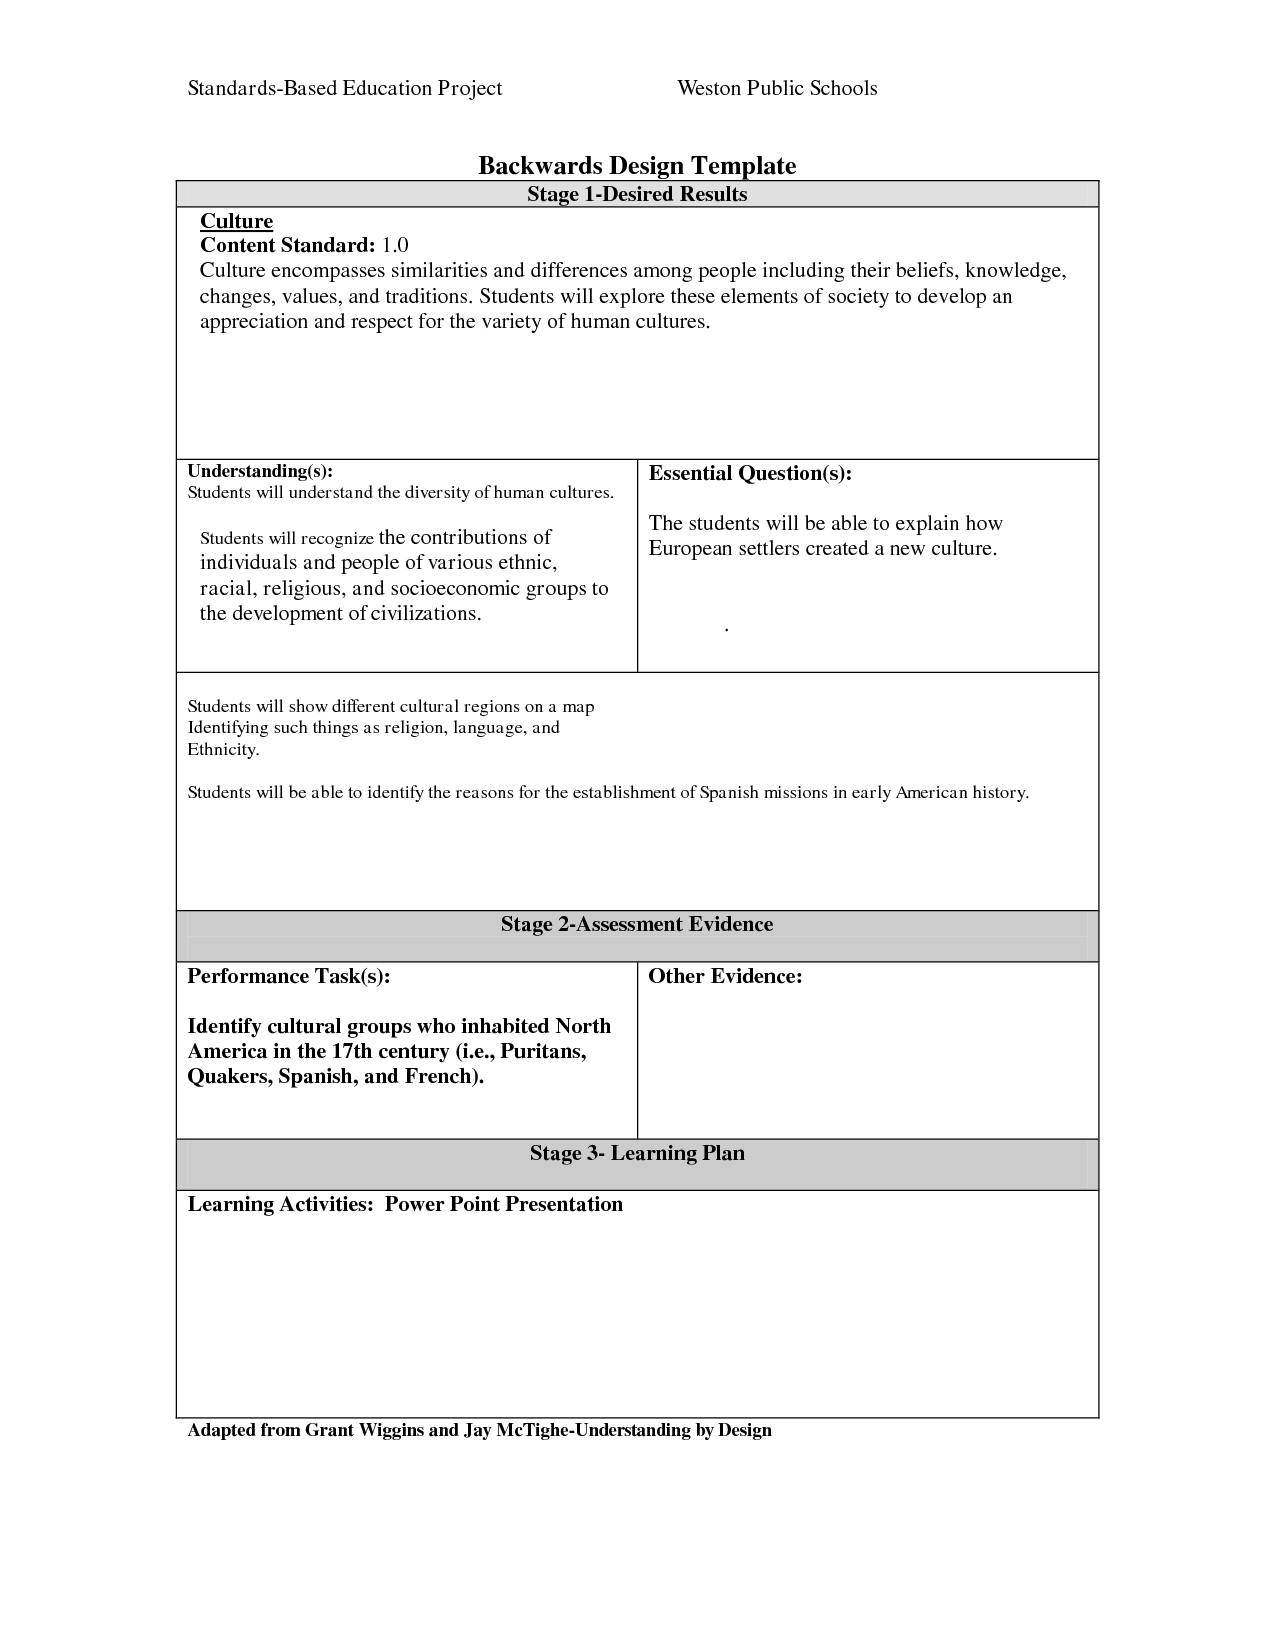 Curriculum design template images professional report for Ohio department of education lesson plan template